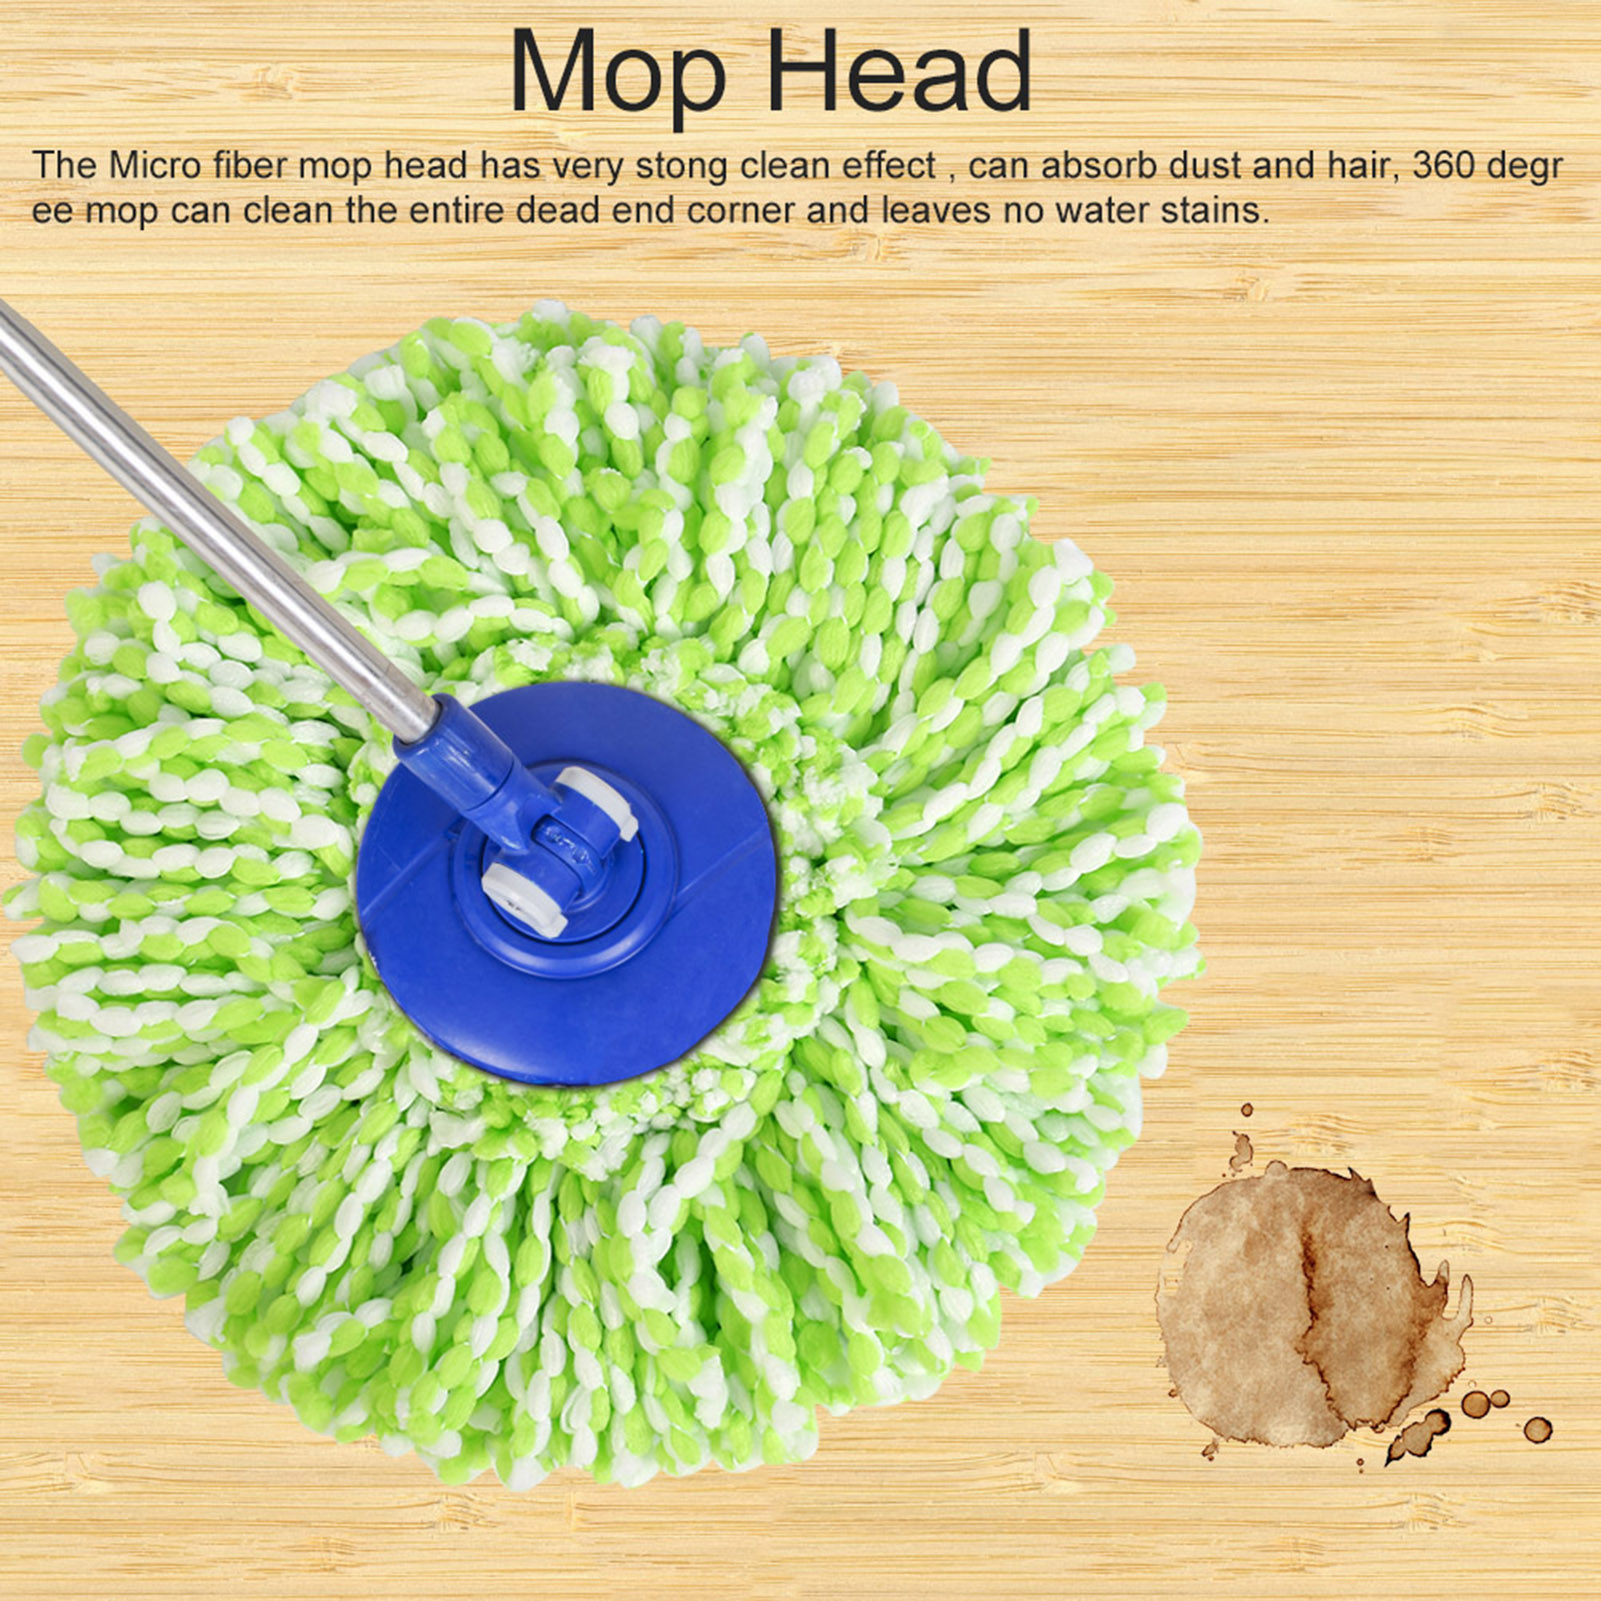 Spinning-Mops-Head-Microfiber-Refill-Rotating-360-Mop-for-Cleaning-AG thumbnail 19